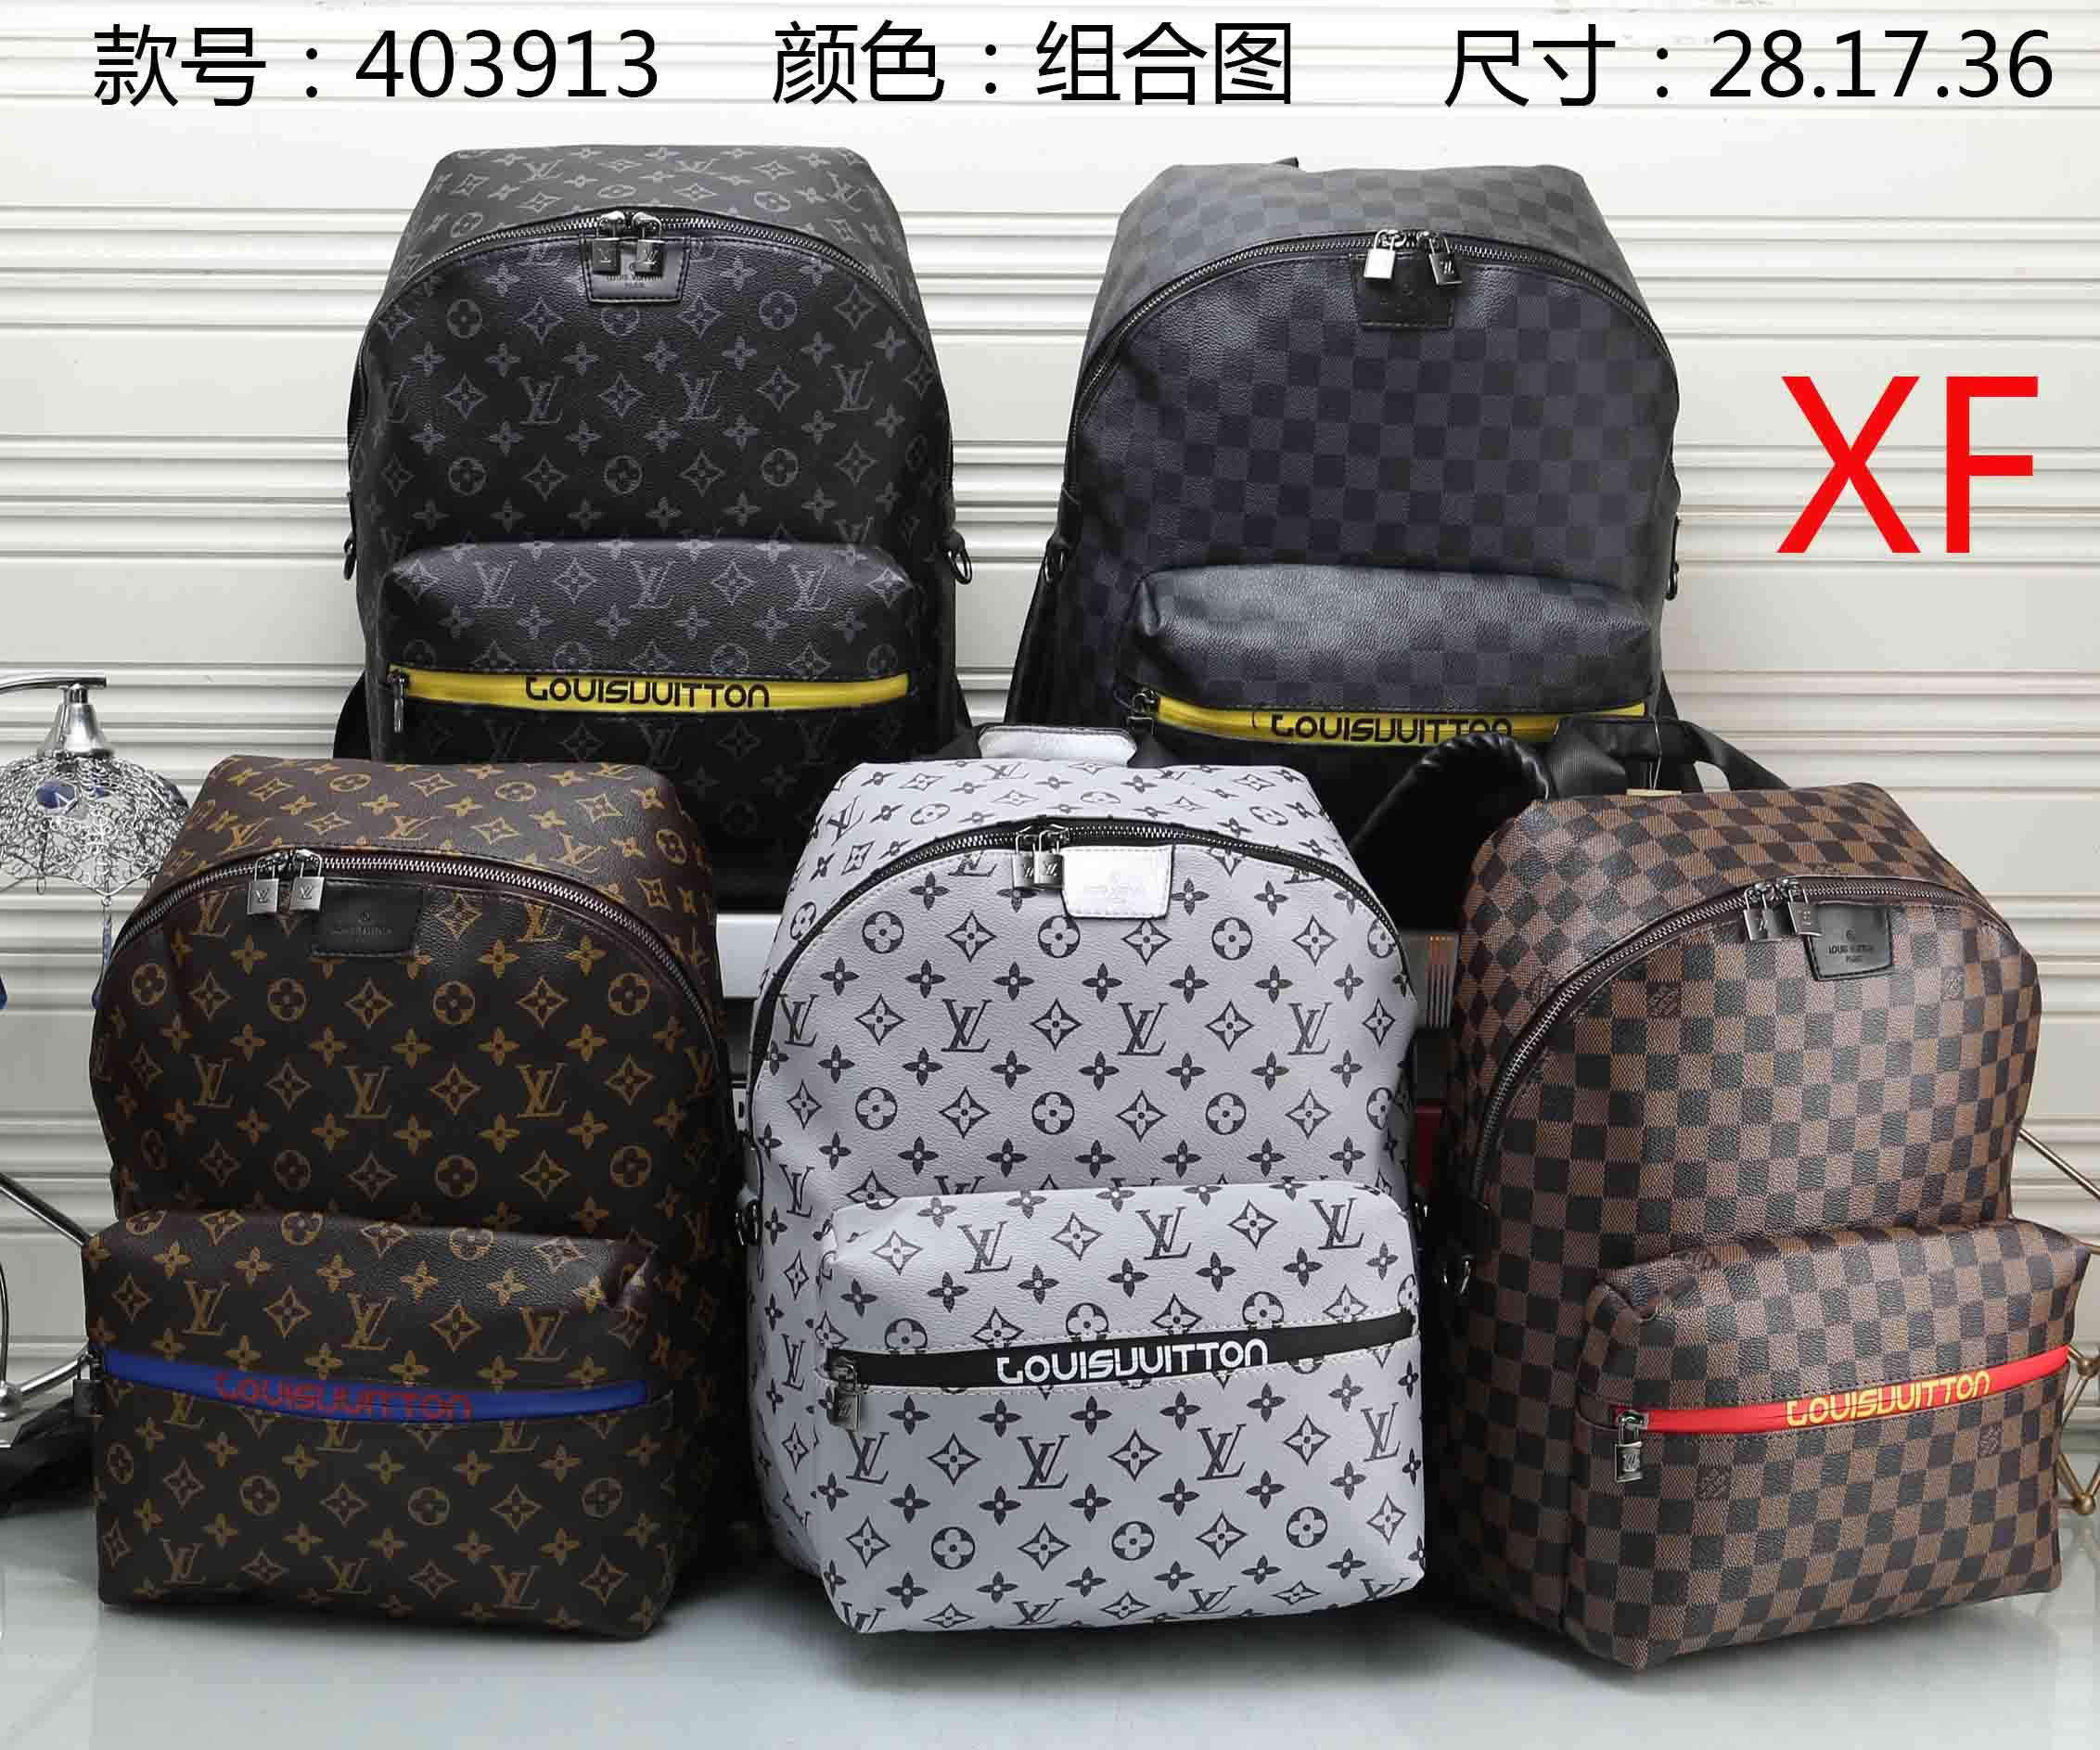 d2c7eba1cf9b LOUIS VUITTON Men backpack Luxury Brand Lady Leather Handbags wallet  Shoulder Bag Tote Clutch Women Bags Designer For Women  003